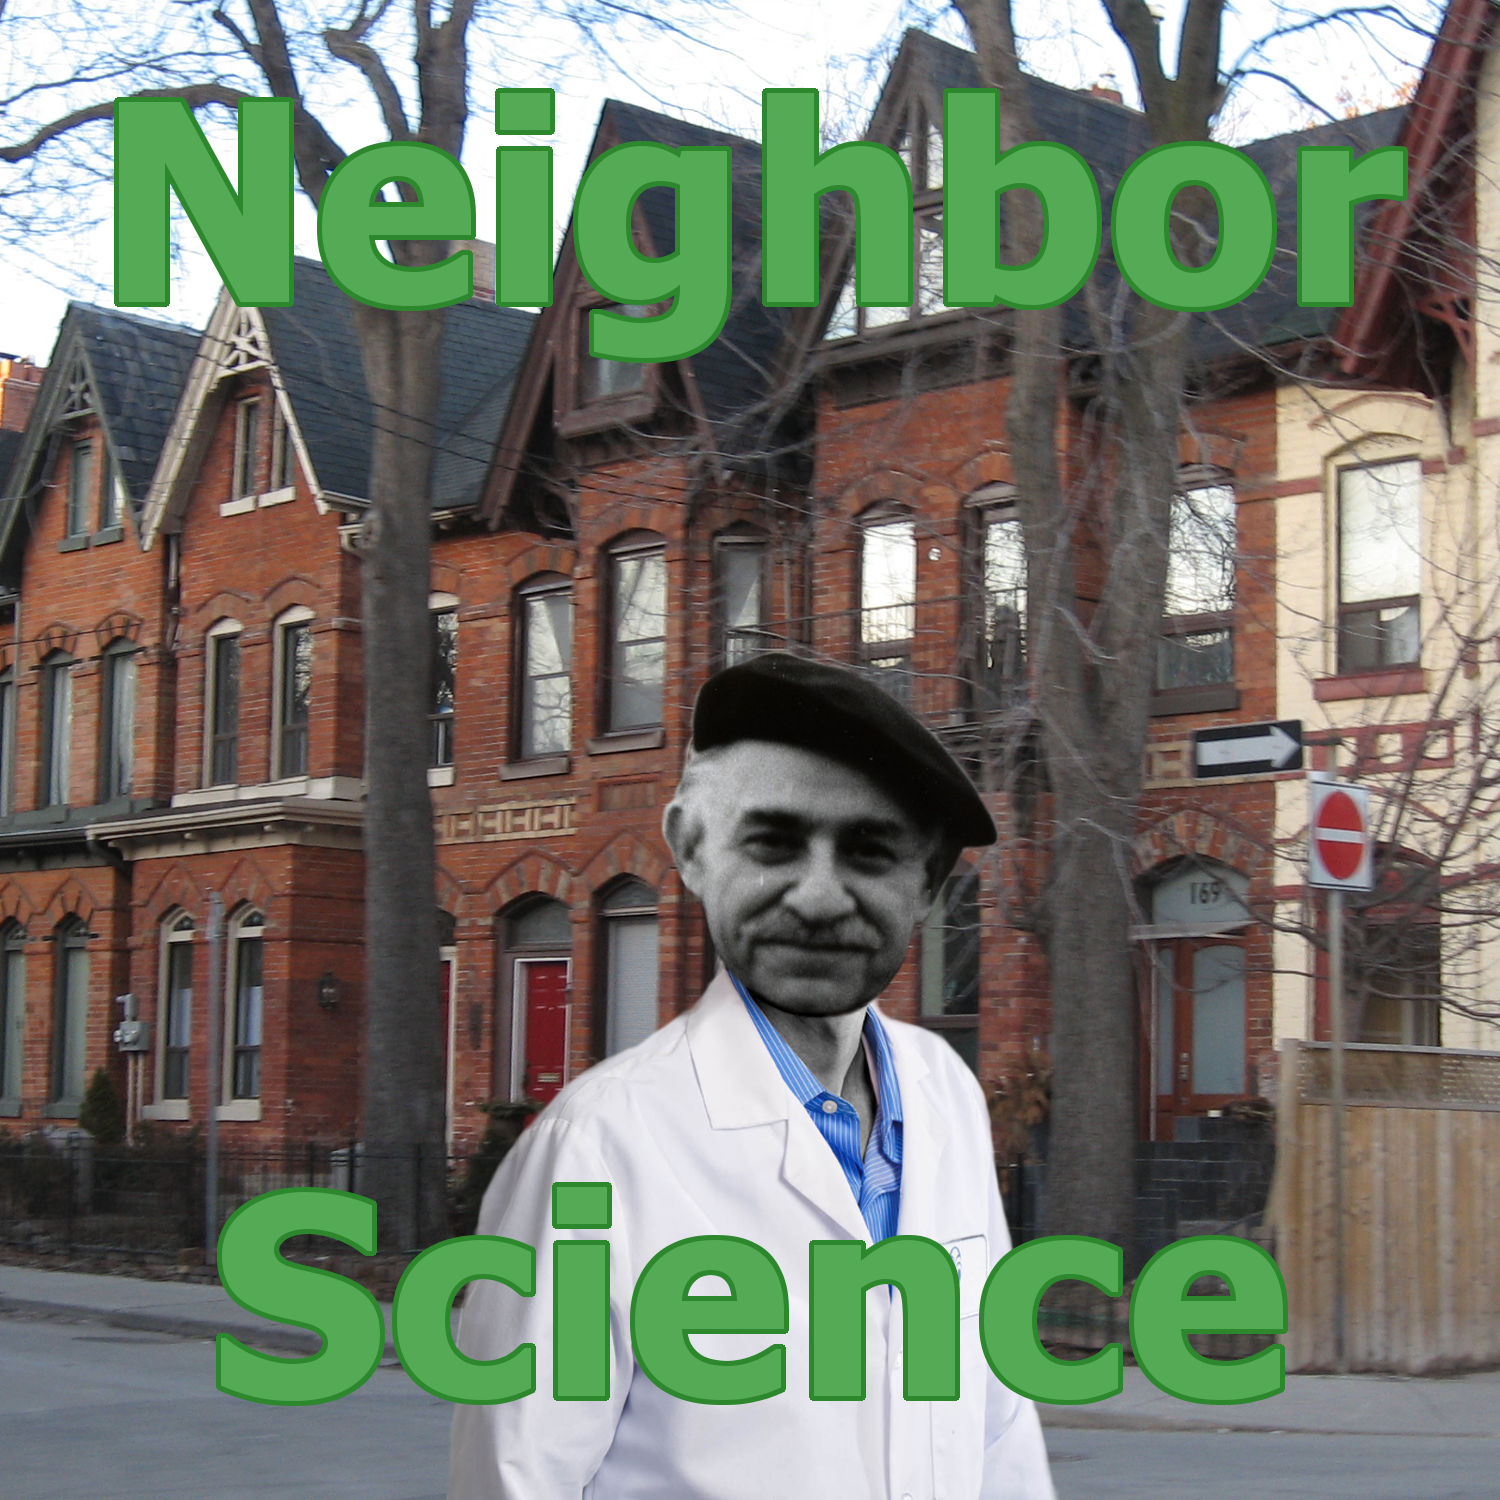 Neighbor Science